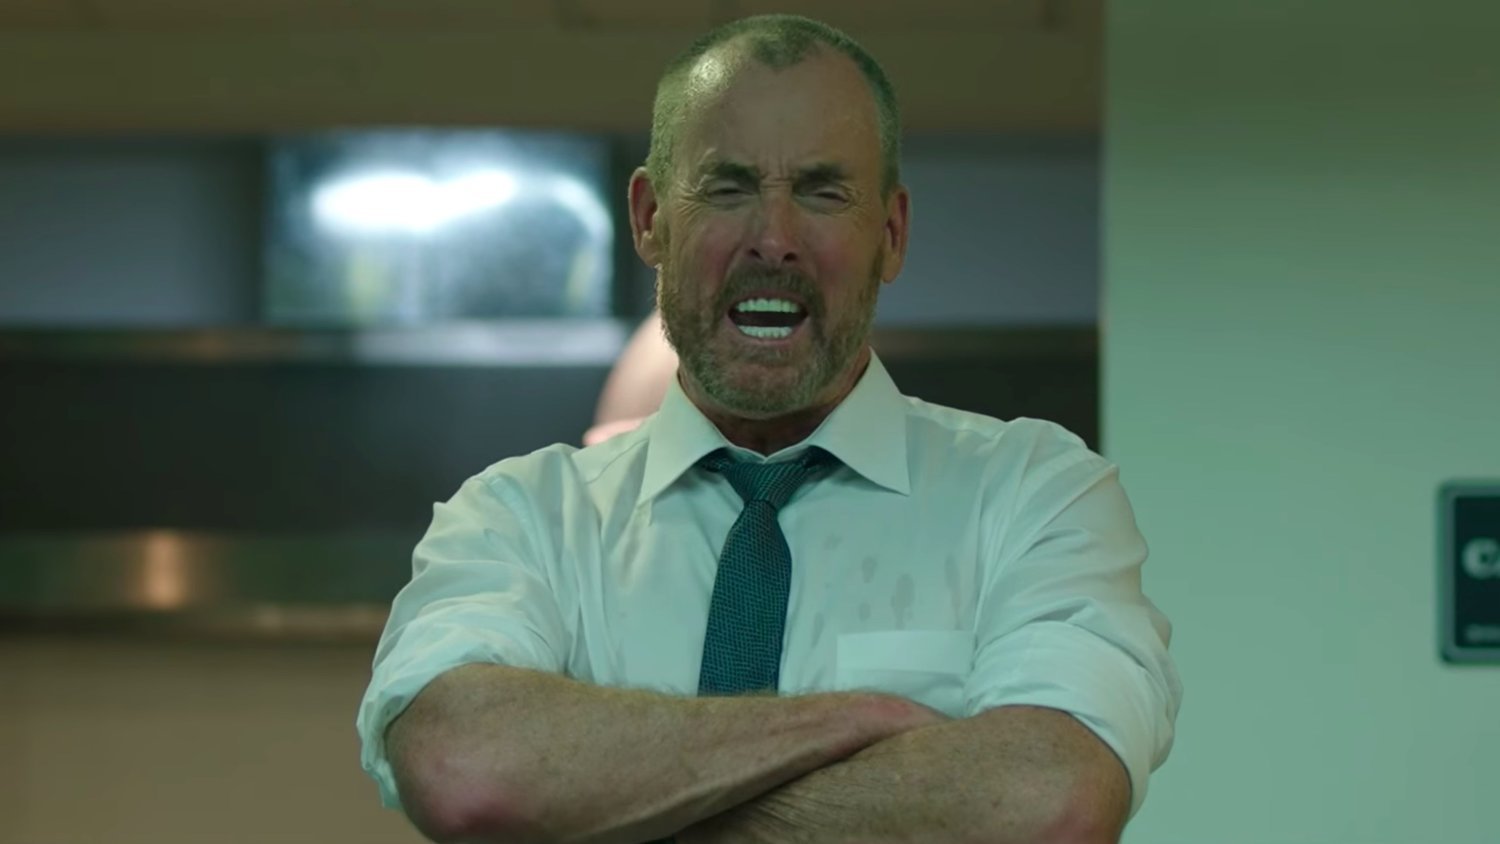 Co-Workers Debate Their Bloody Fate in Clip from James Gunn's THE BELKO EXPERIMENT